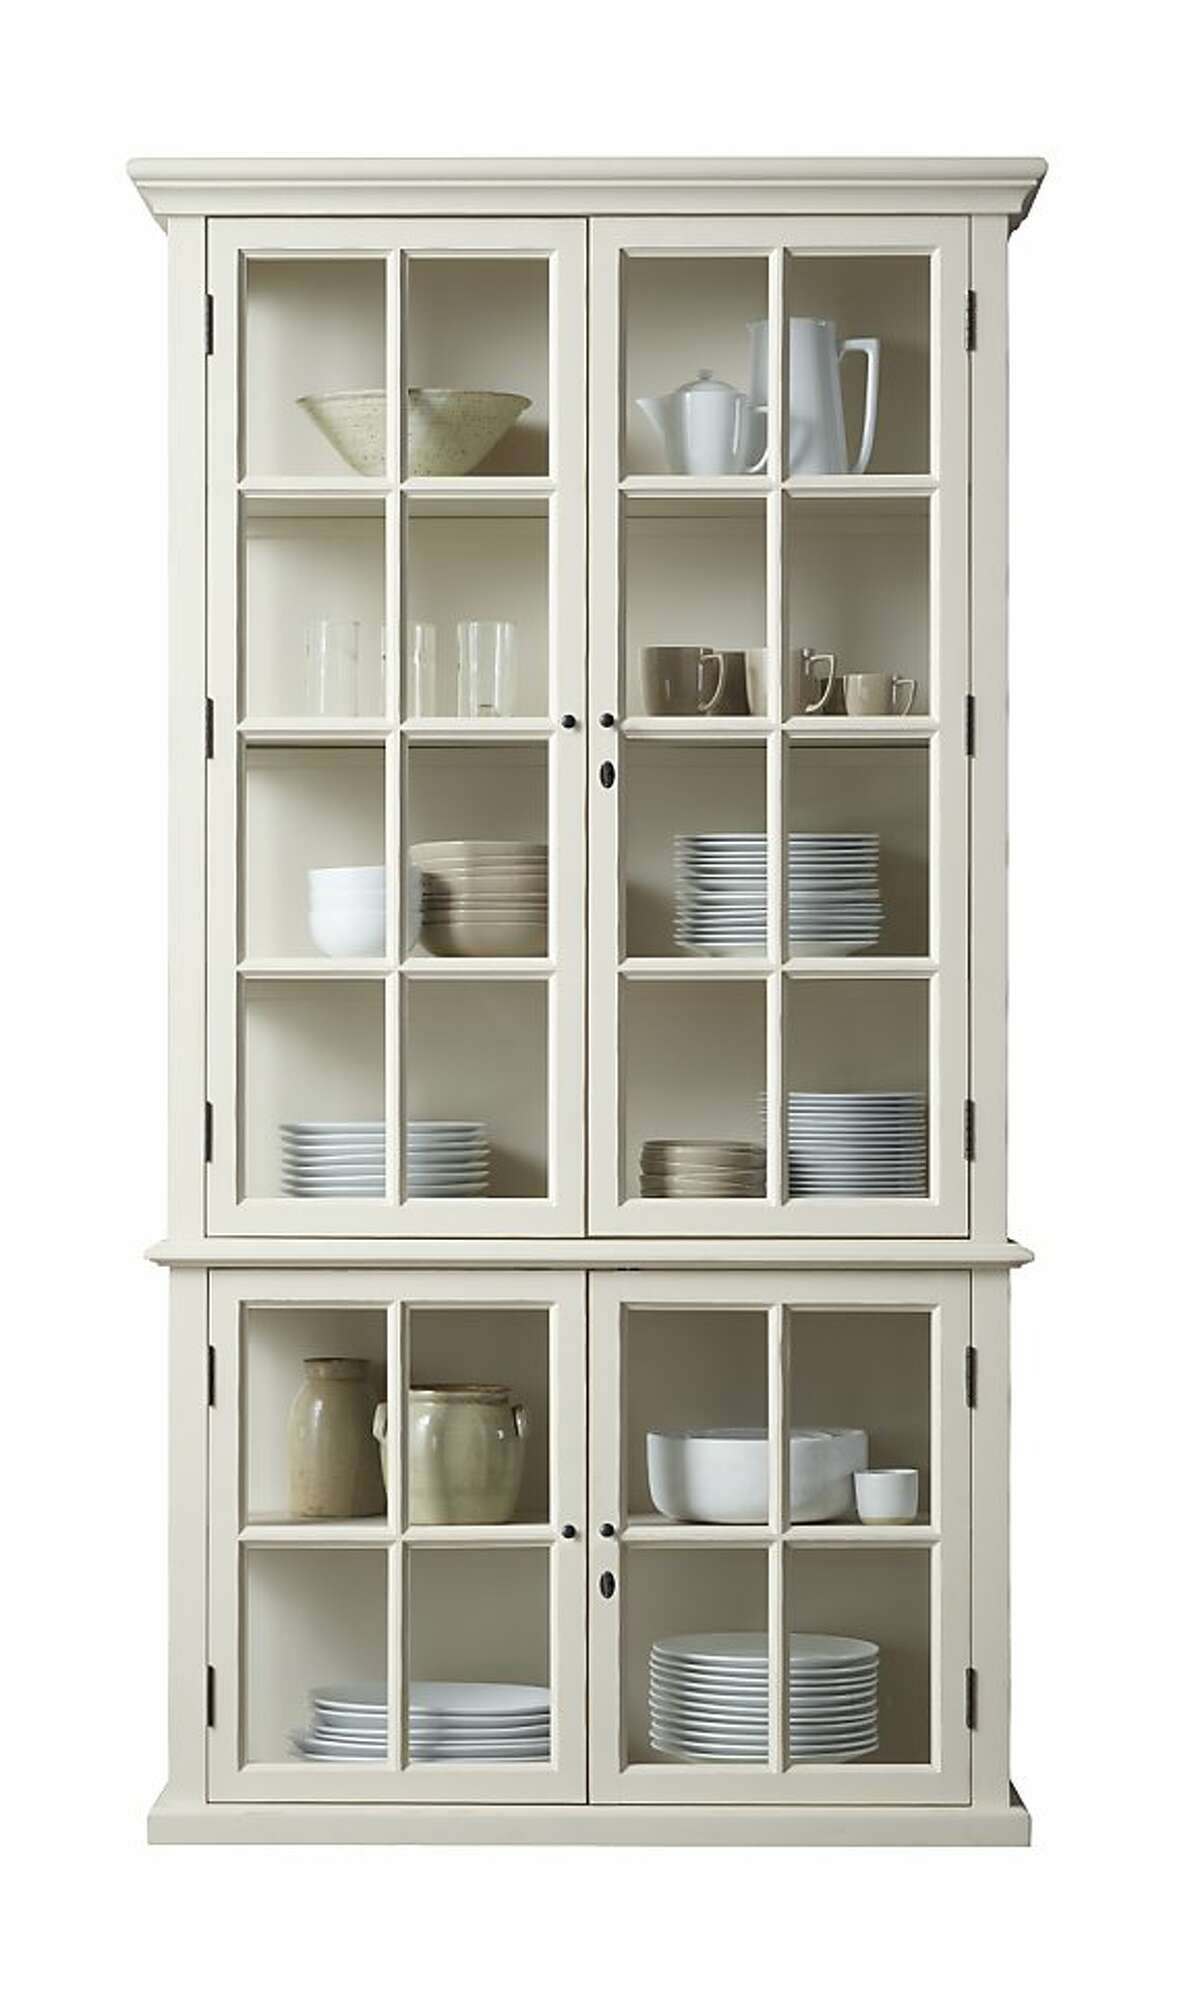 More: $1,595 to $1,795 Hampton Case Cabinet from Restoration Hardware (www.restorationhardware.com) With a sleek stature, gently distressed white finish and panes of tempered glass on three sides, this solid oak cabinet had us at hello. It measures 47 -inches wide, 16 inches deep with two choices in height: 77 inches (five shelves) and 91 inches (six shelves). Available in four other finishes.